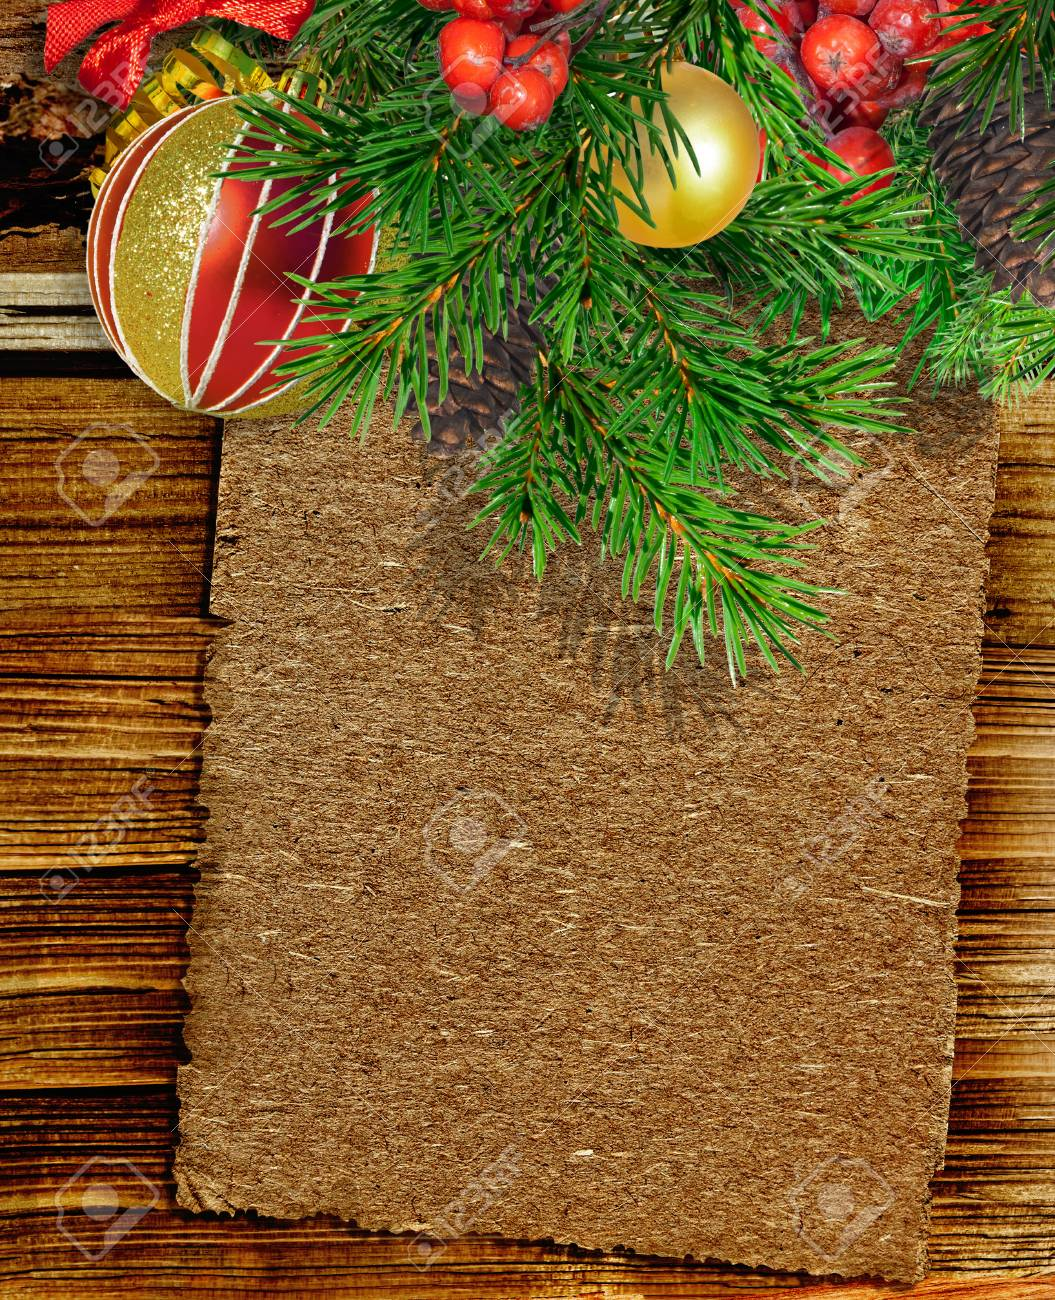 Old Paper Christmas Branch And Decorations On Wooden Background